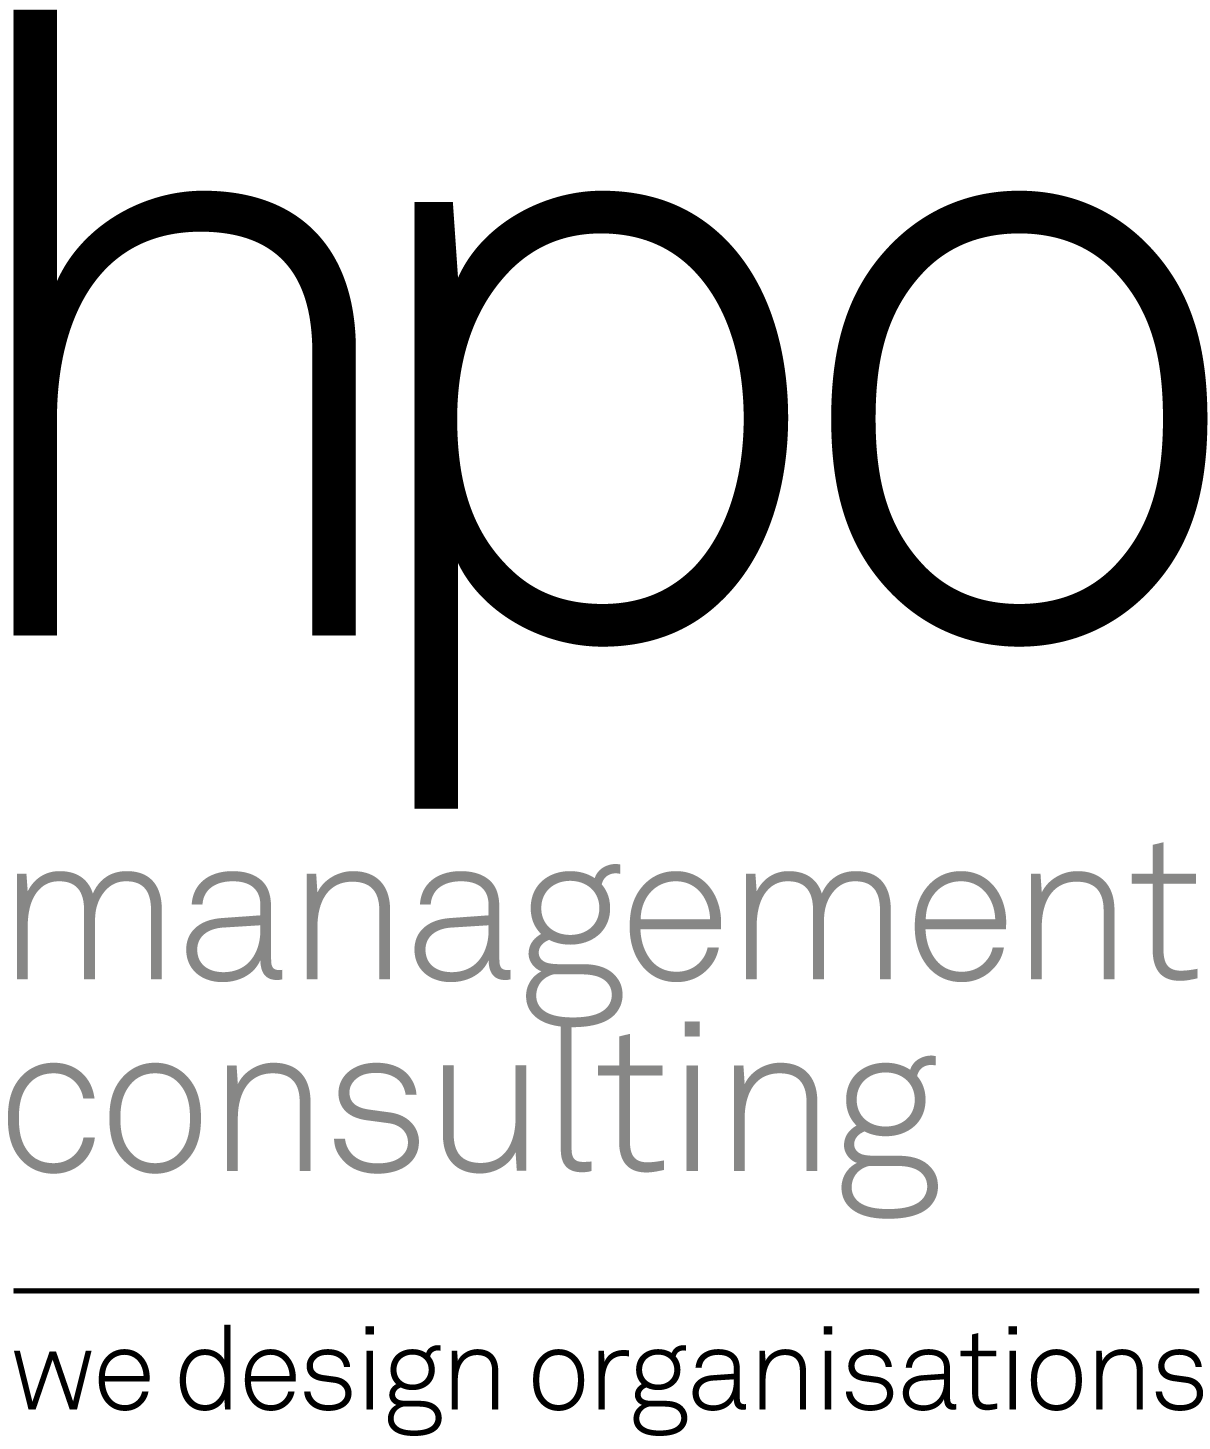 hpo management consulting ag